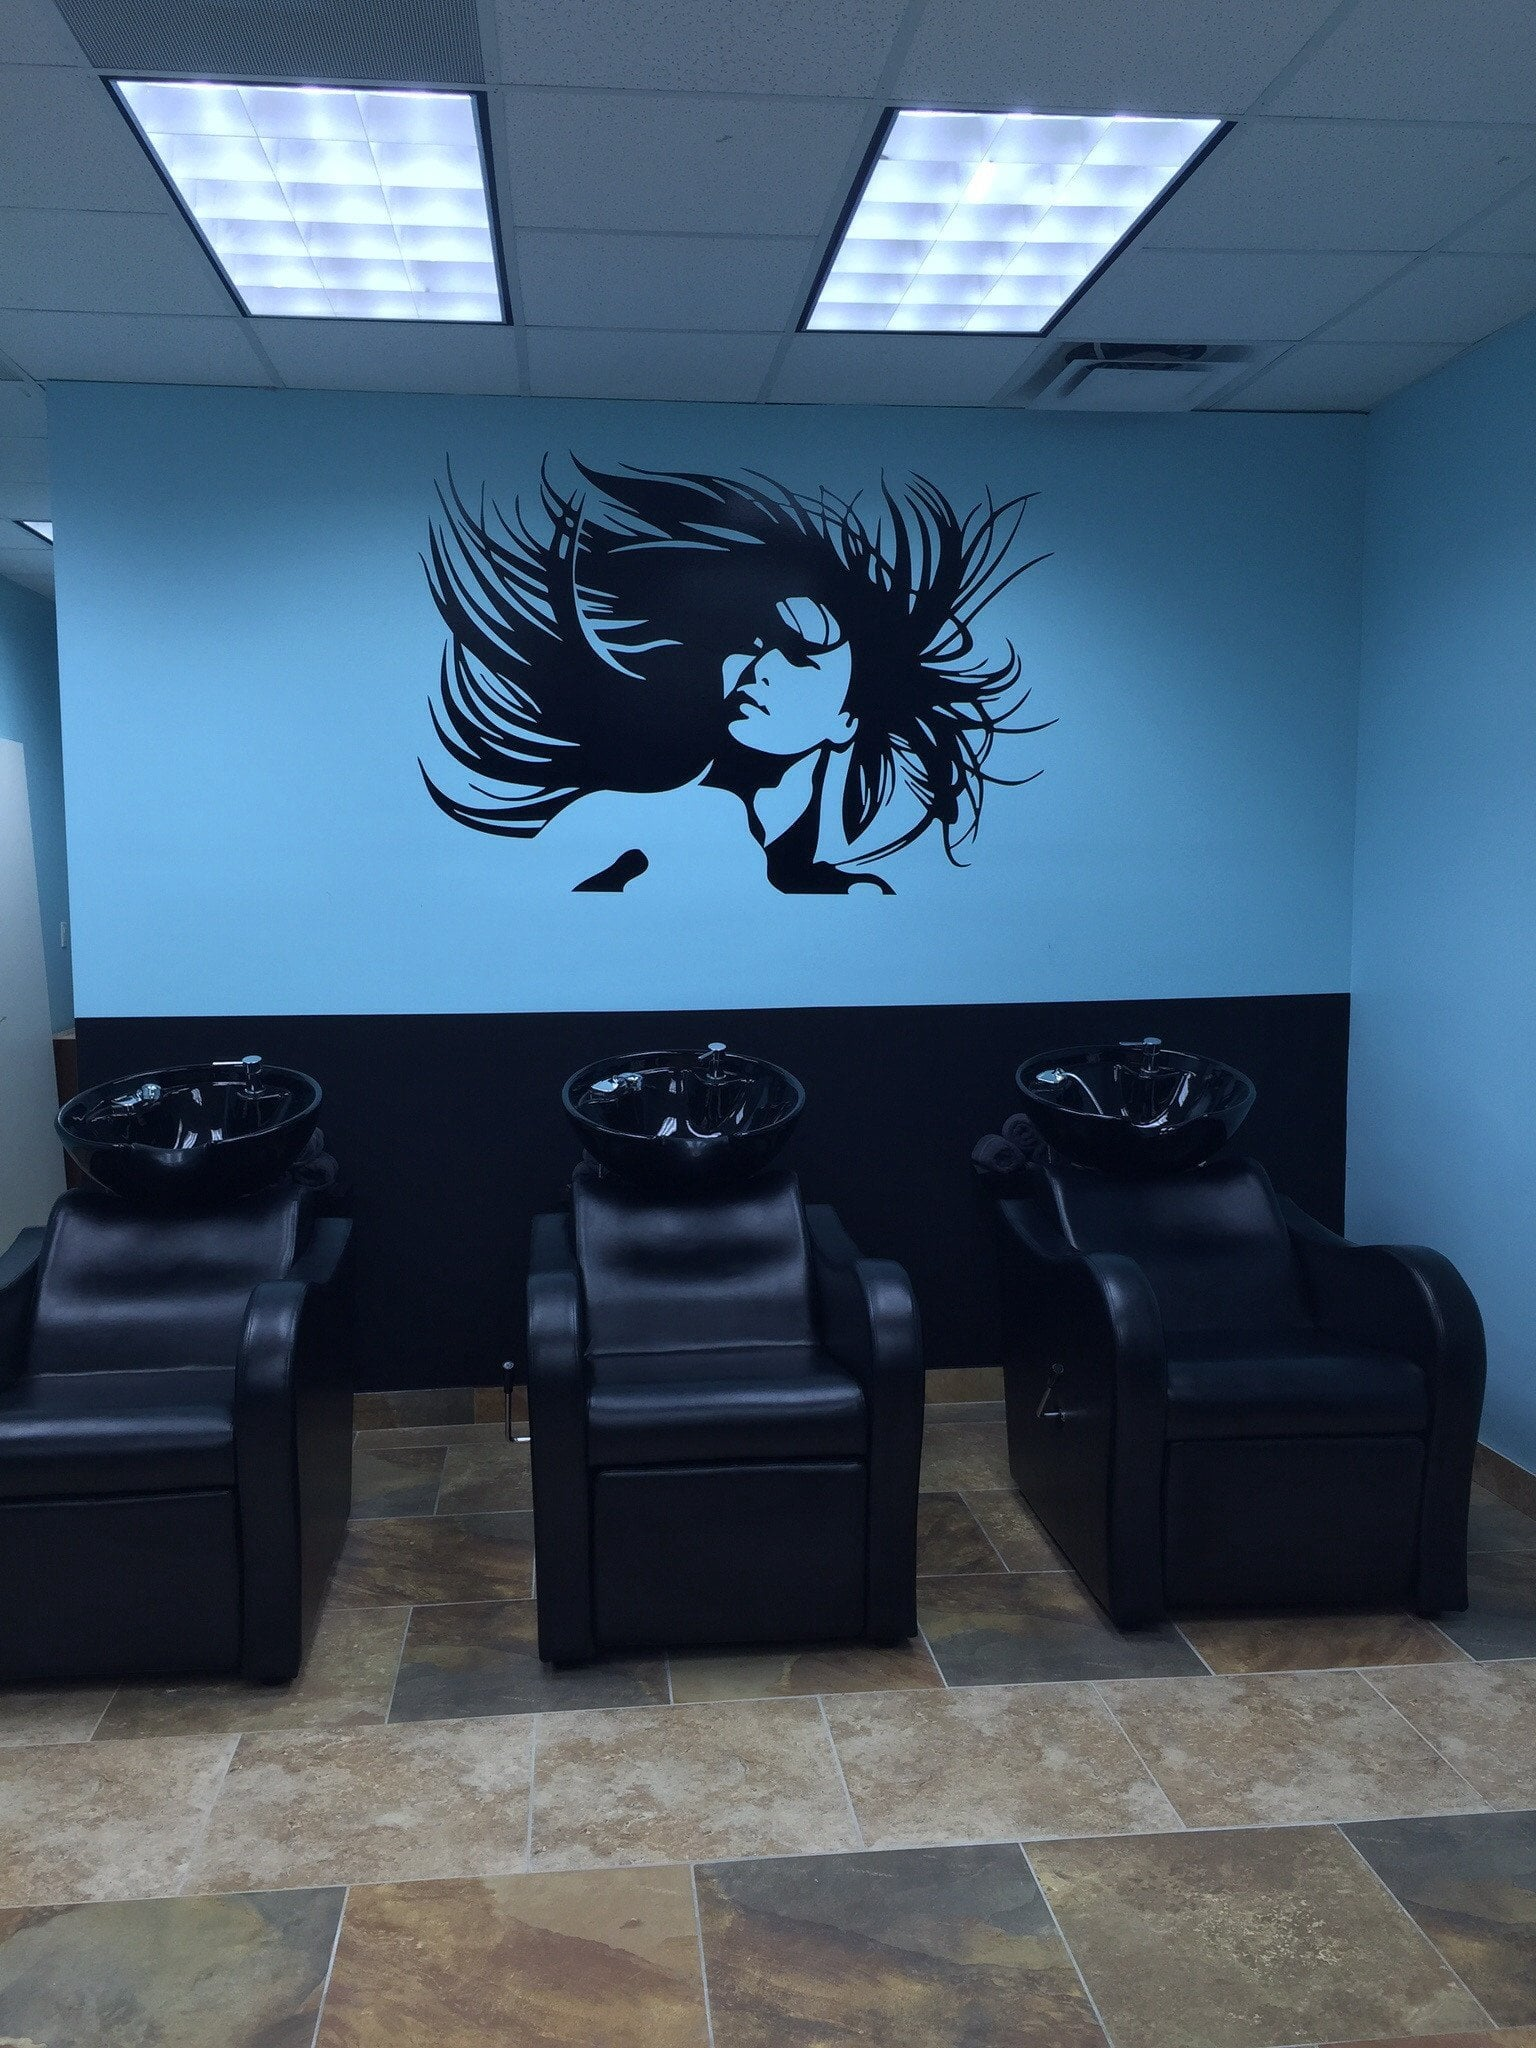 Check out how great this hair salon decal turned out!